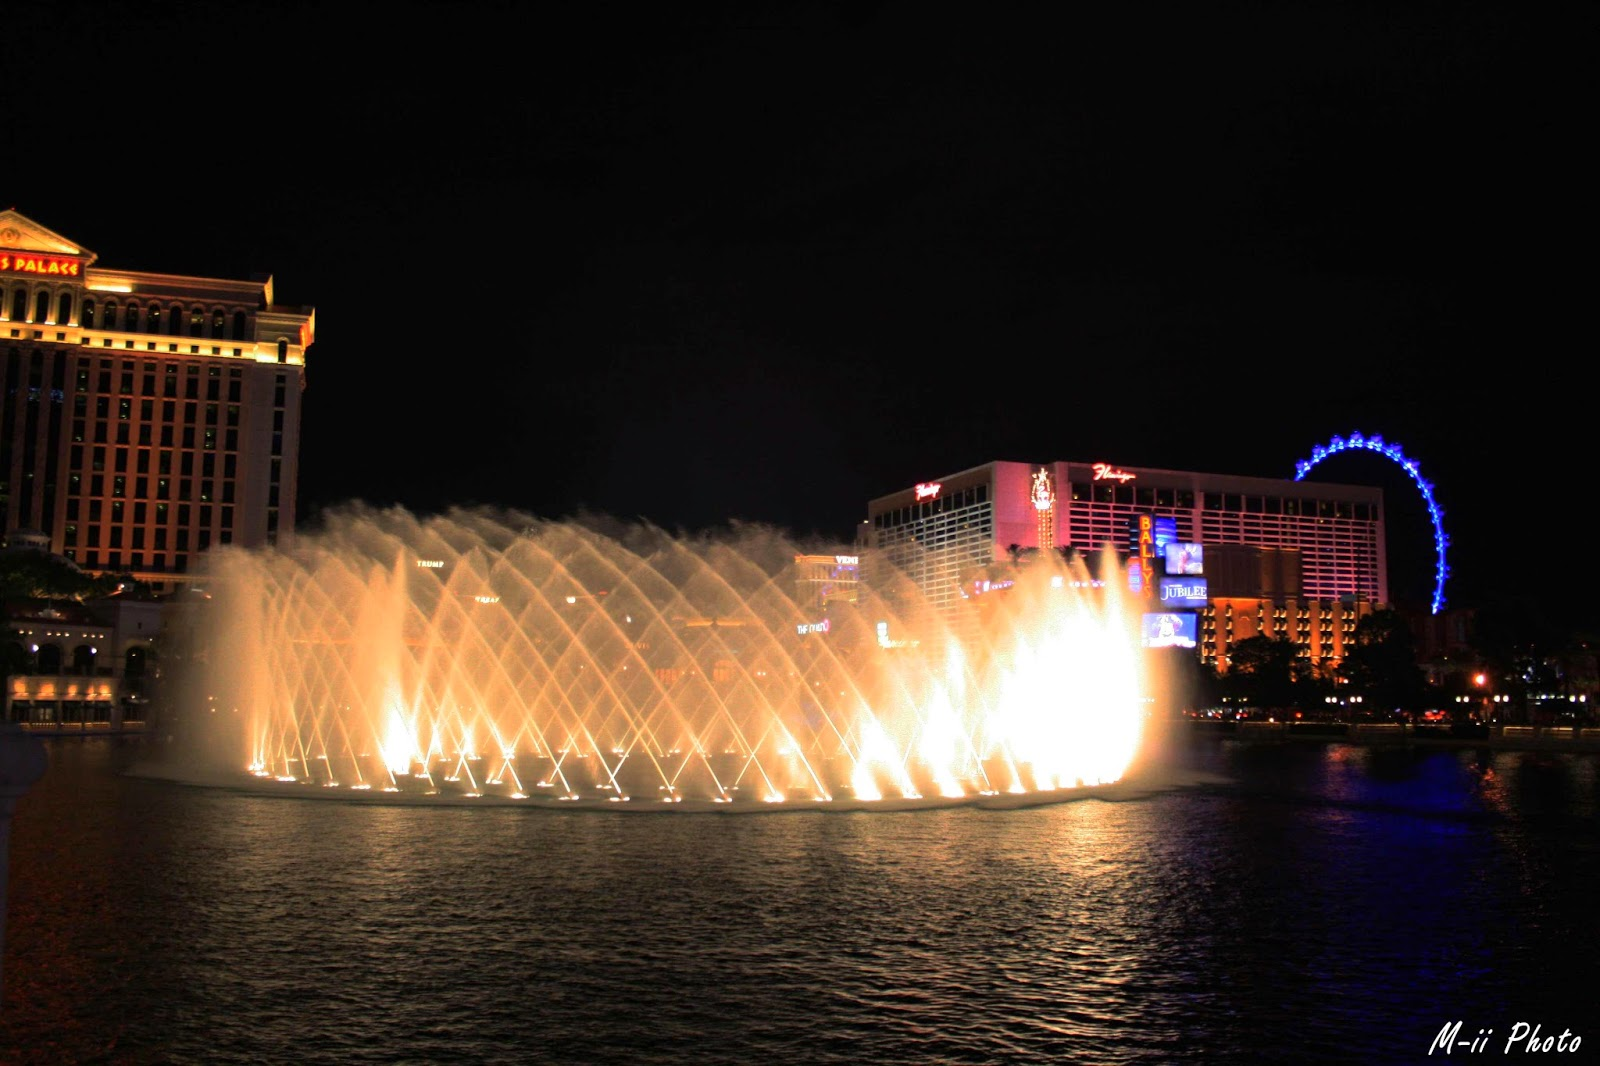 M-ii Photo : Las Vegas Show jets d'eau